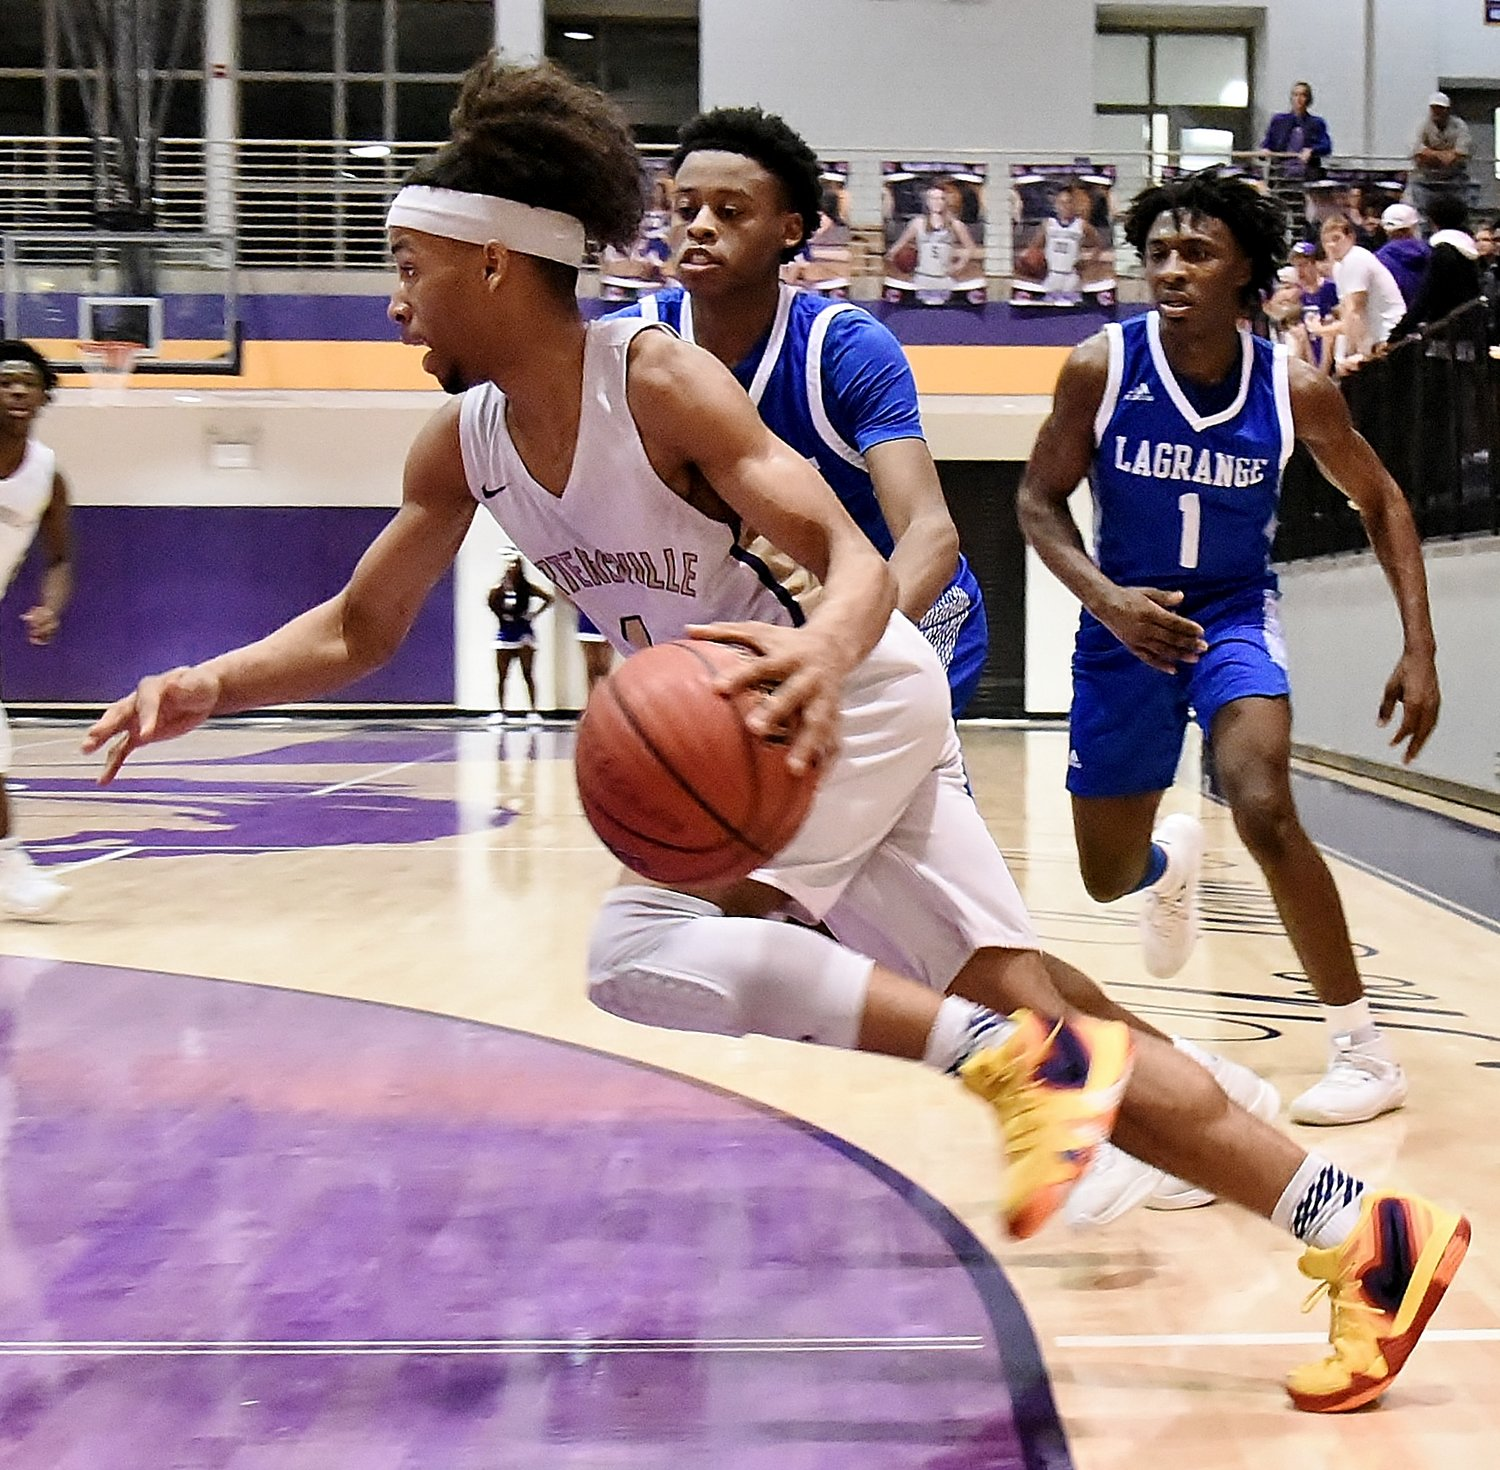 Cartersville senior Perignon Dyer drives towards the basket during Wednesday's quarterfinal matchup with LaGrange in the Region 5-AAAA tournament at The Storm Center. Dyer finished with 18 points to lead the Canes to a 61-55 victory and a spot in the Class 4A state playoffs.